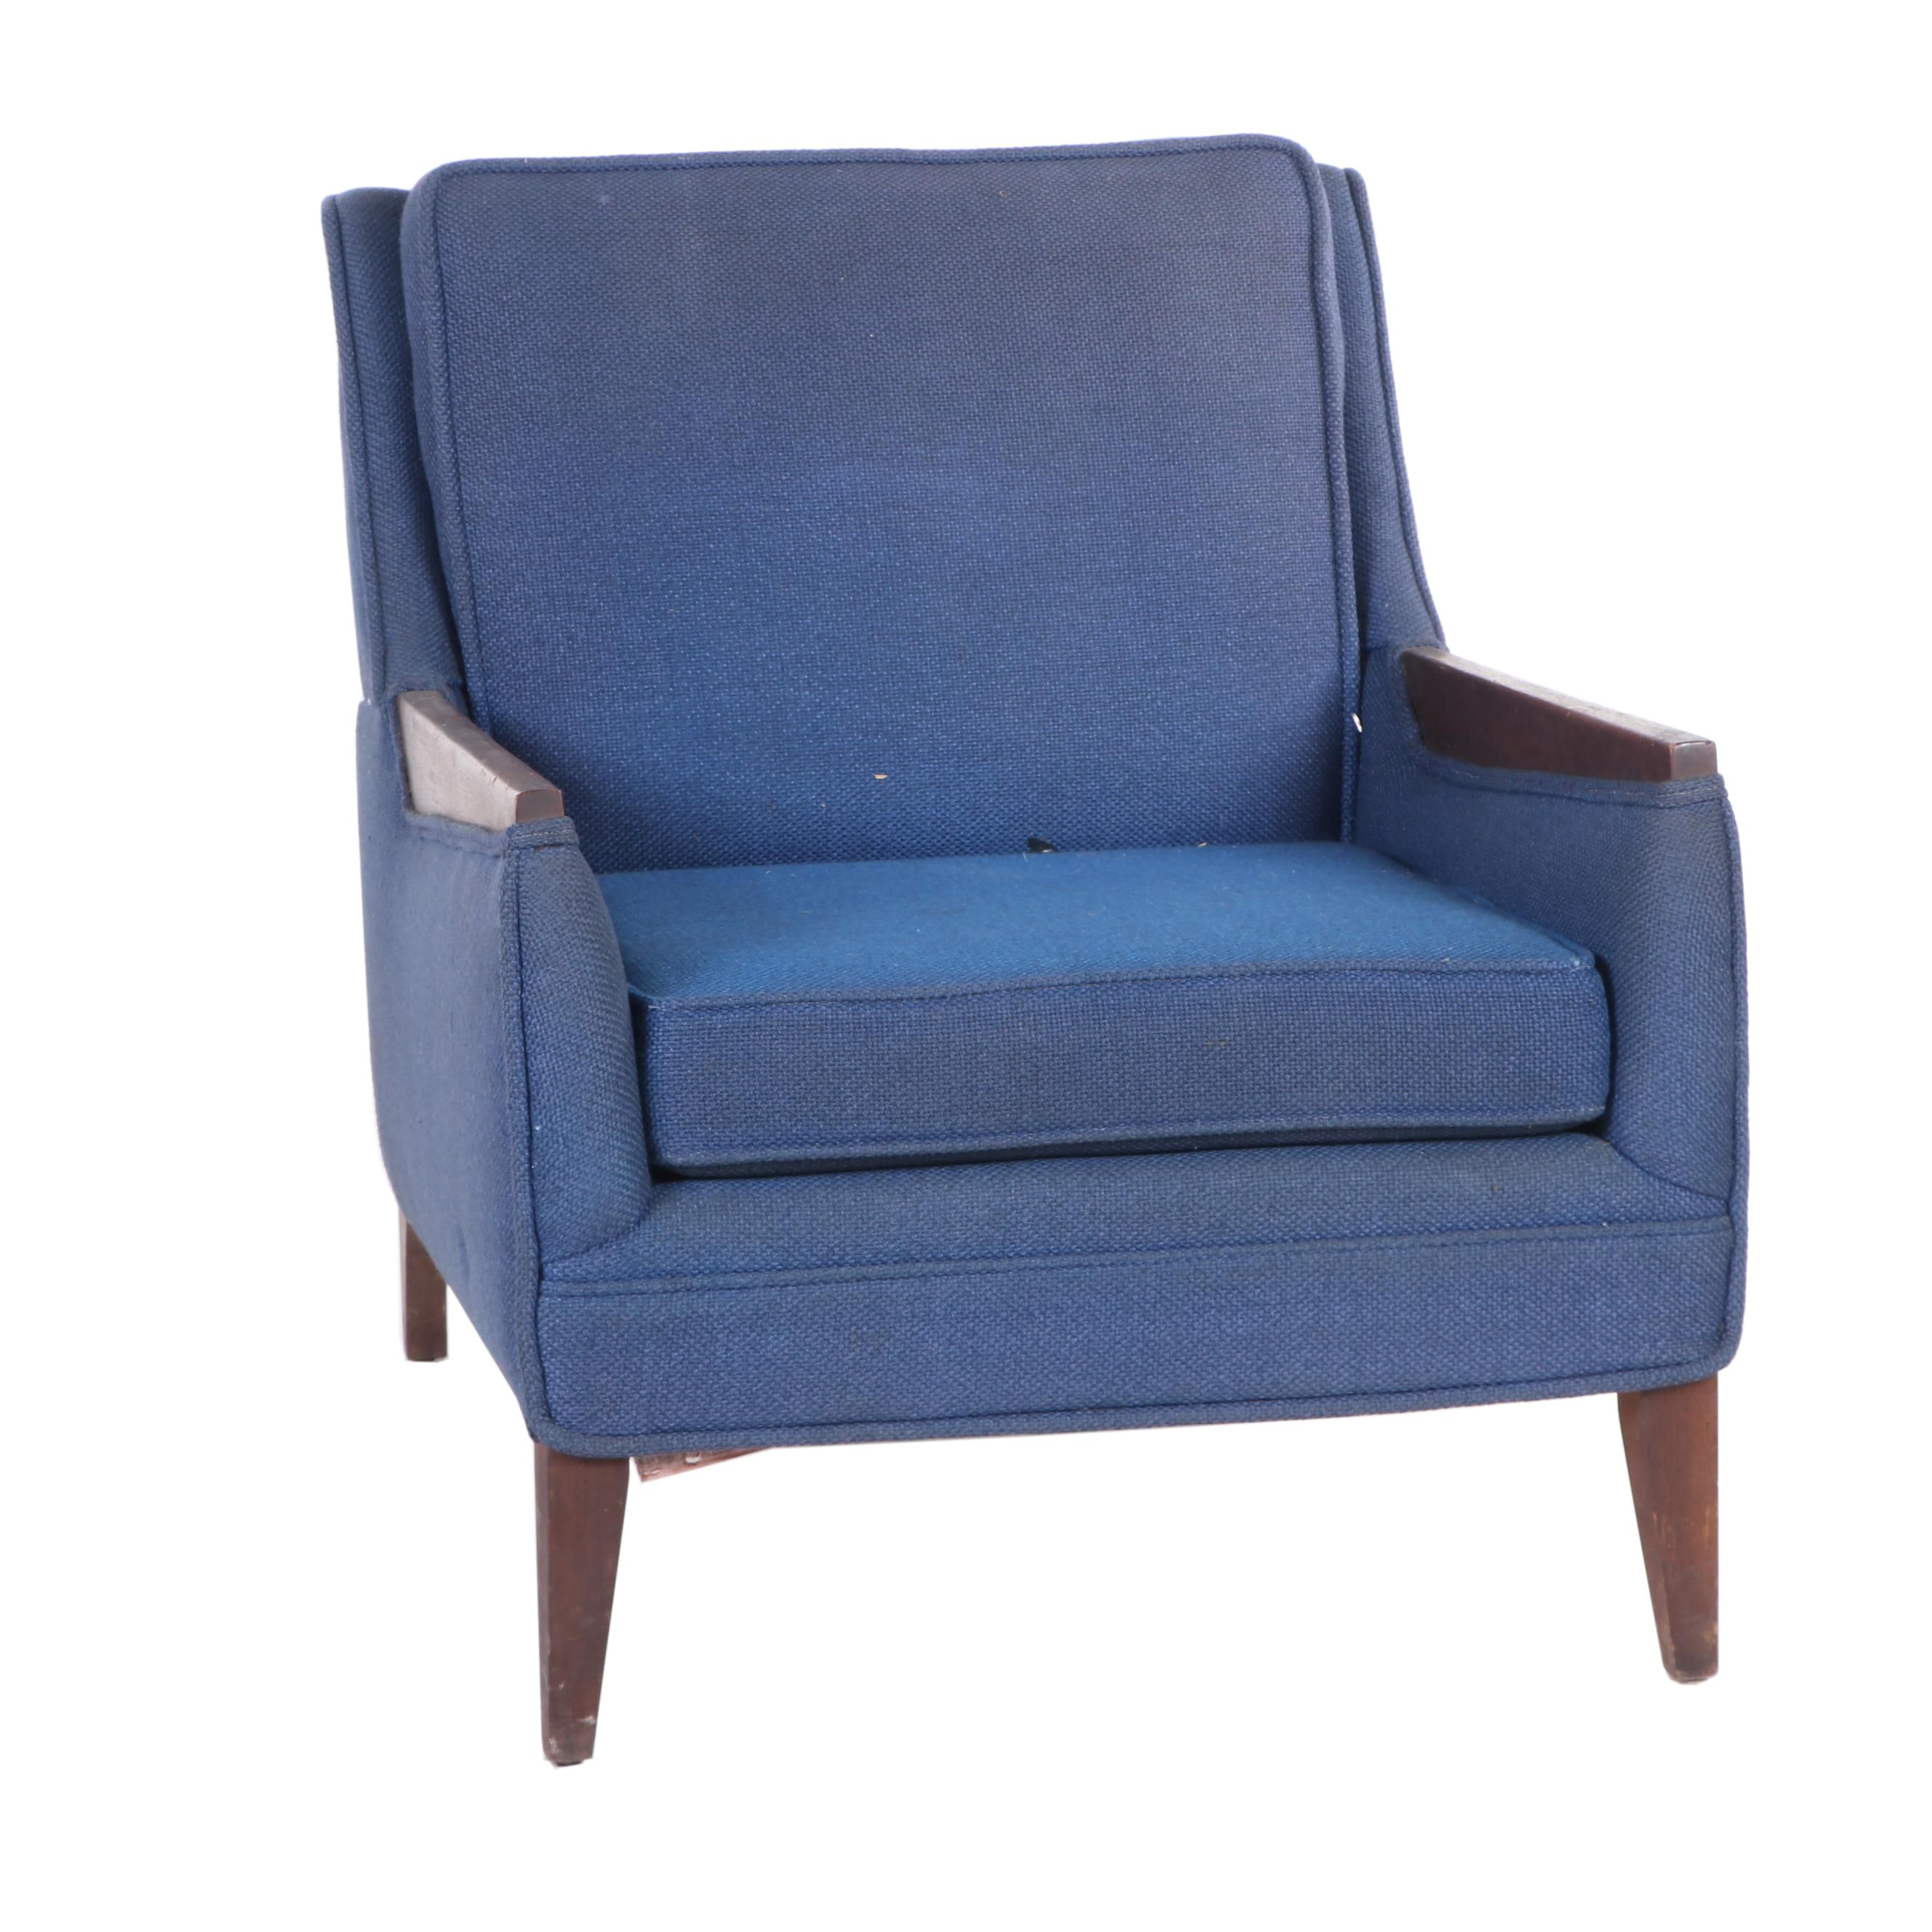 Fashion Art Upholstered Lounge Chair, Mid-Century